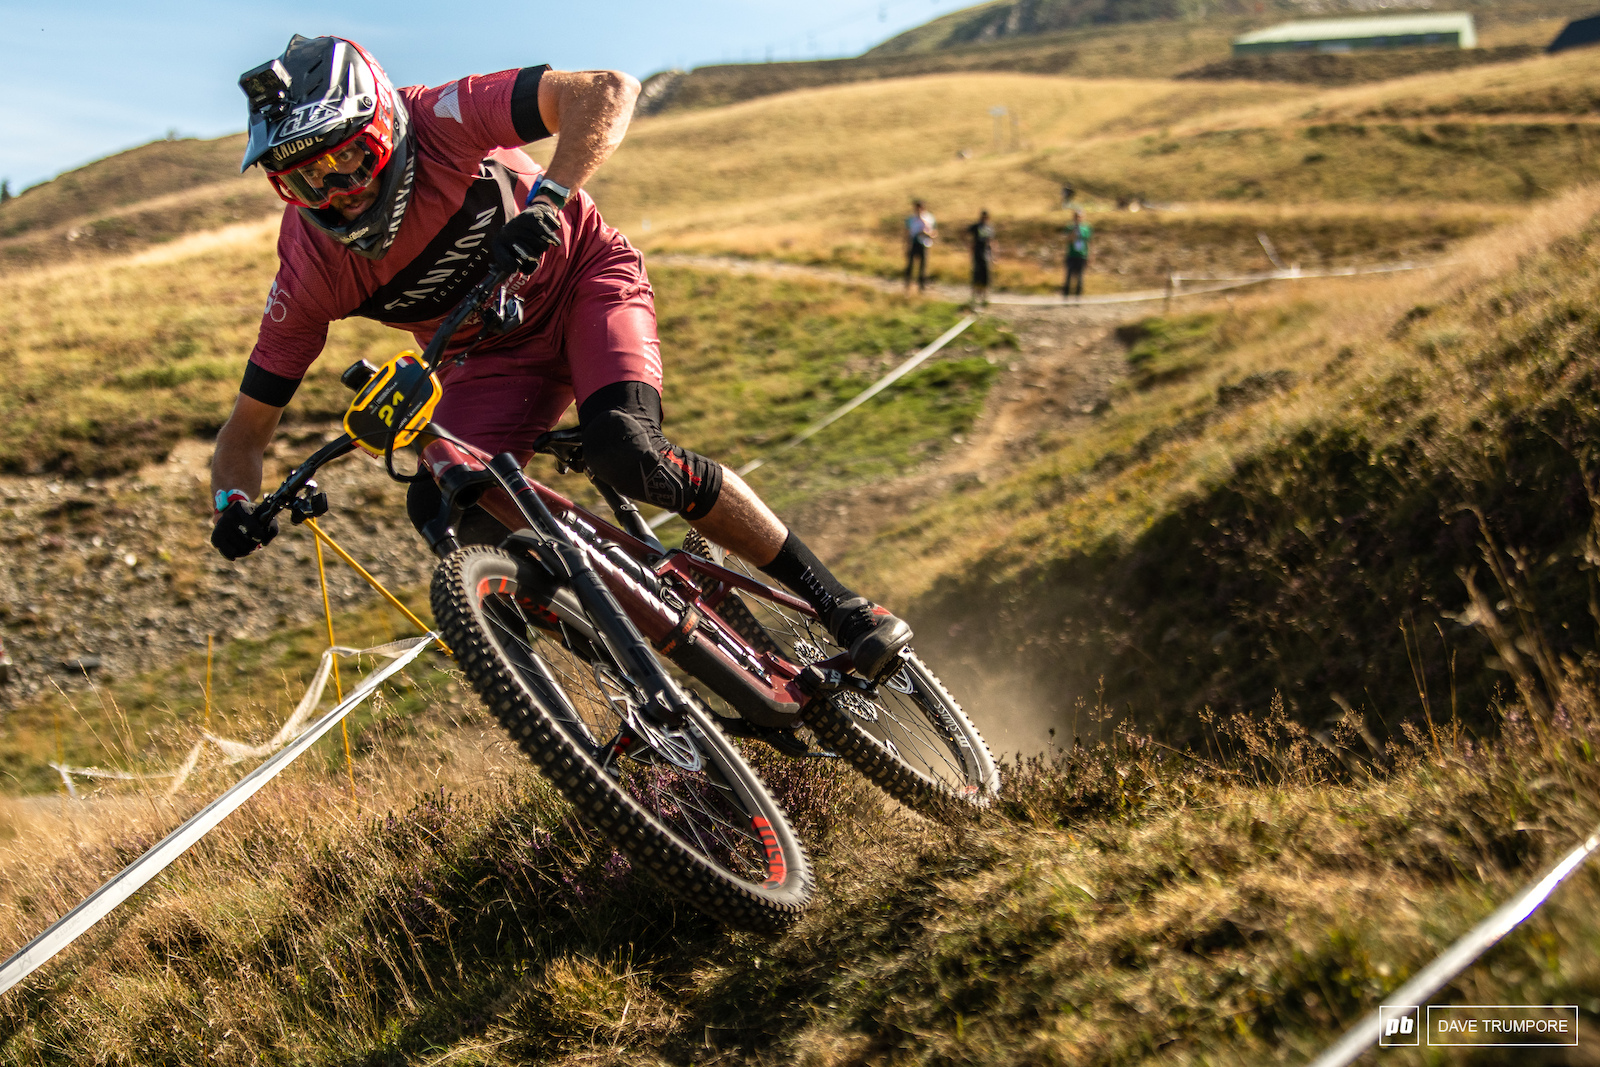 Jack Moir made it two wins in two tries In Loudenvielle thanks in part to a little luck after Richie Rude dropped a chain on the final stage